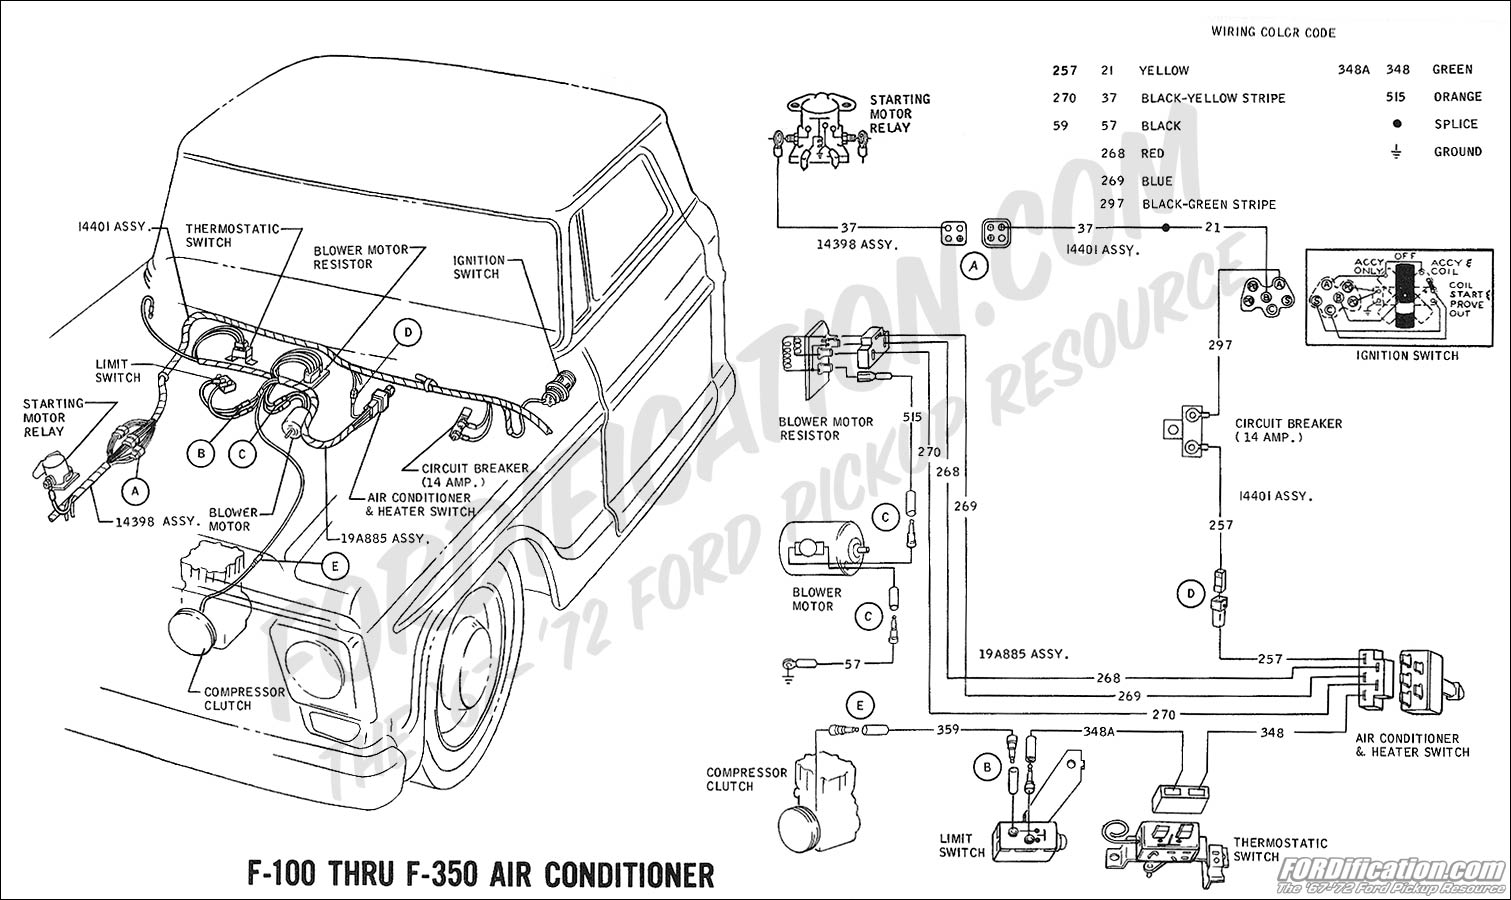 wiring_69ac 1999 ford f 150 radio wiring diagram chevy truck wiring diagram 1999 cadillac deville radio wiring diagram at honlapkeszites.co